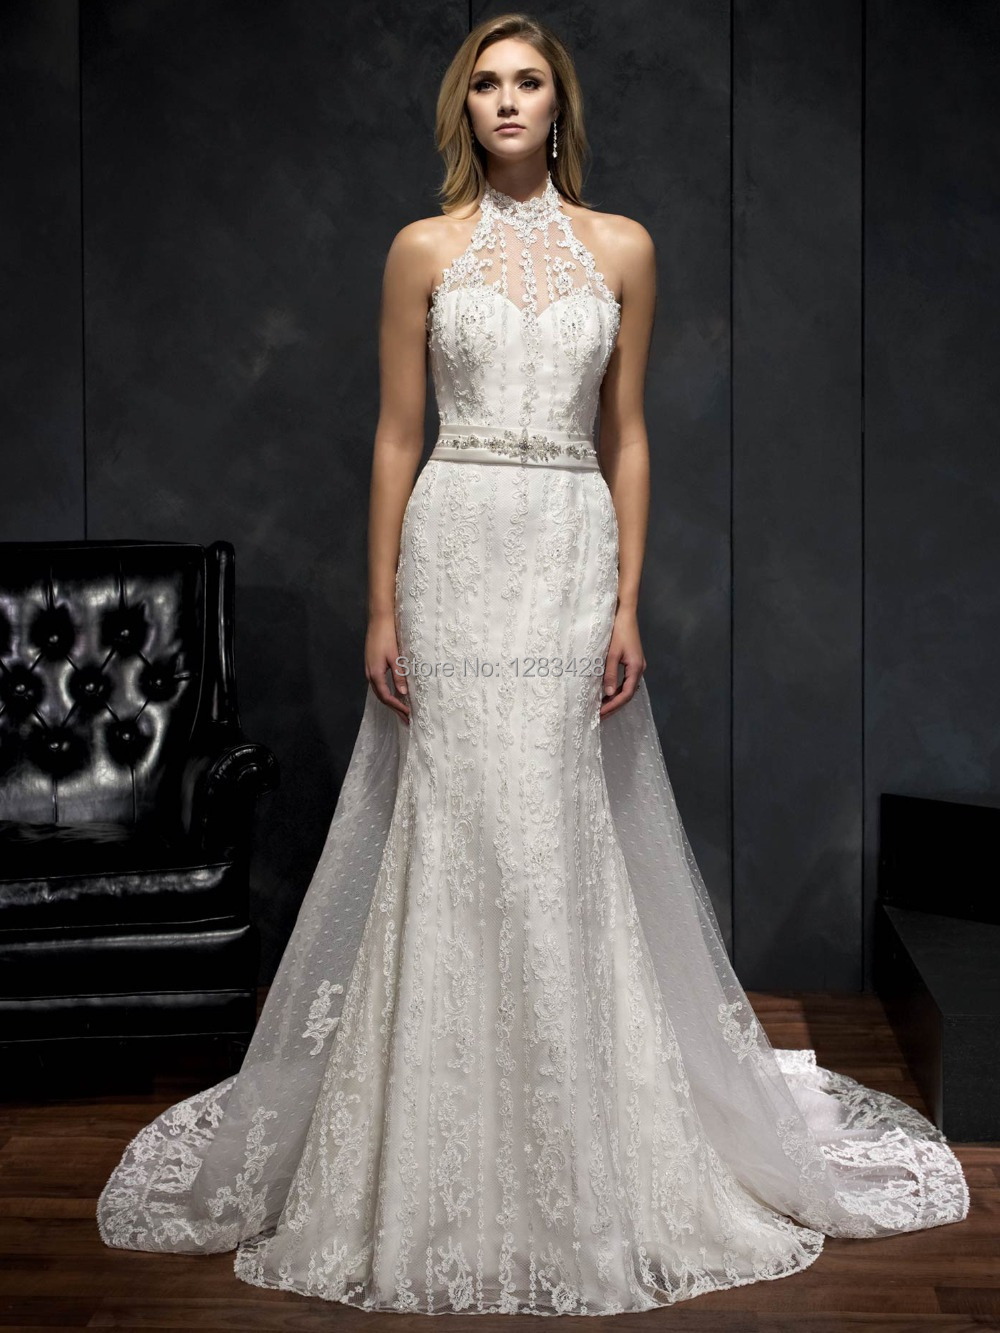 lace halter top wedding dress halter top wedding dresses Wedding Dress From Reliable Celeb Suppliers Aliexpress Com Sleeveless Lace Long Train Low Back Halter